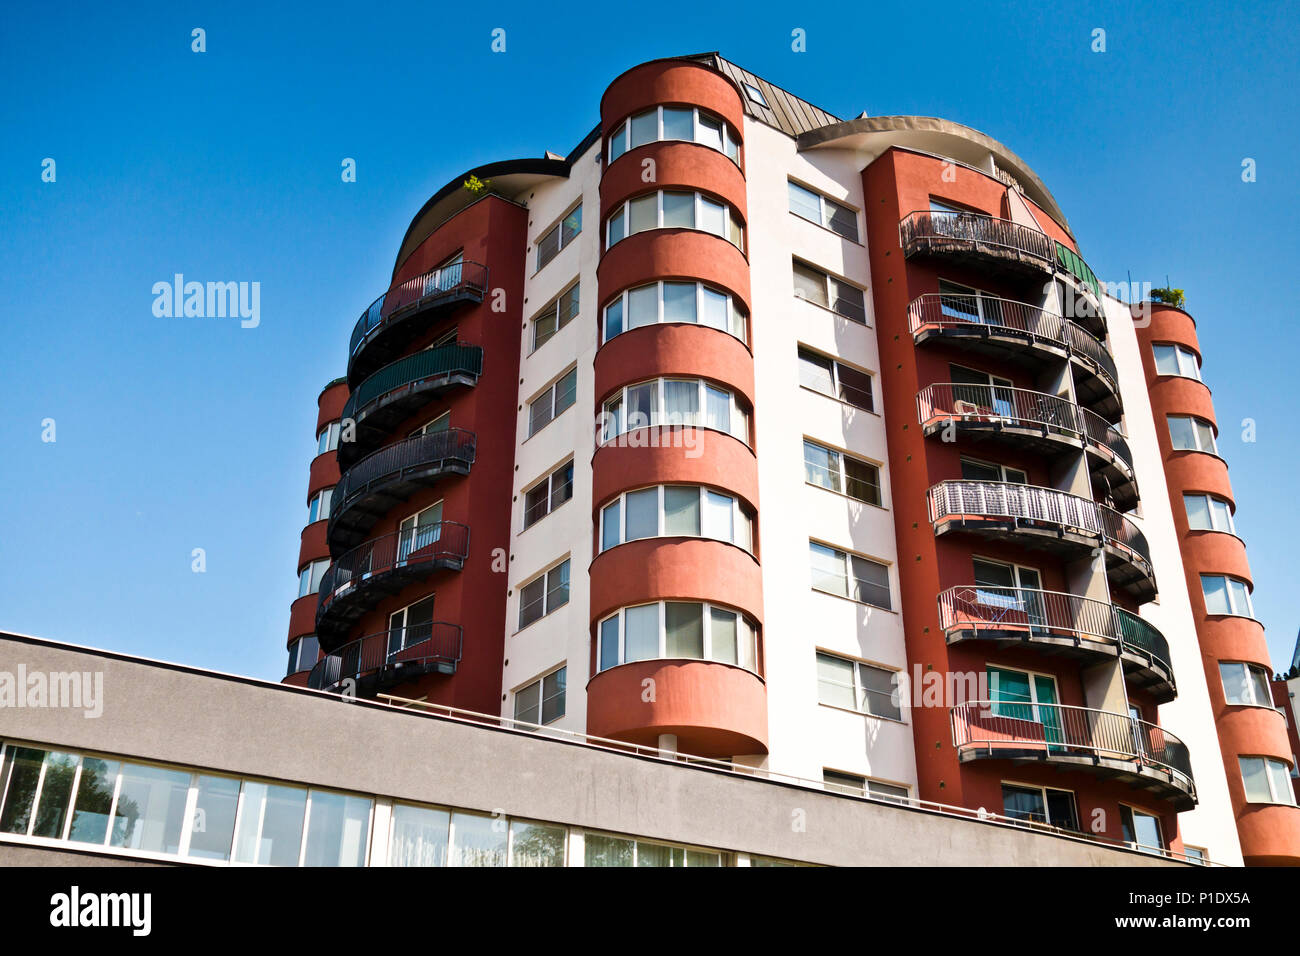 modern residential multi-story apartments building - Stock Image